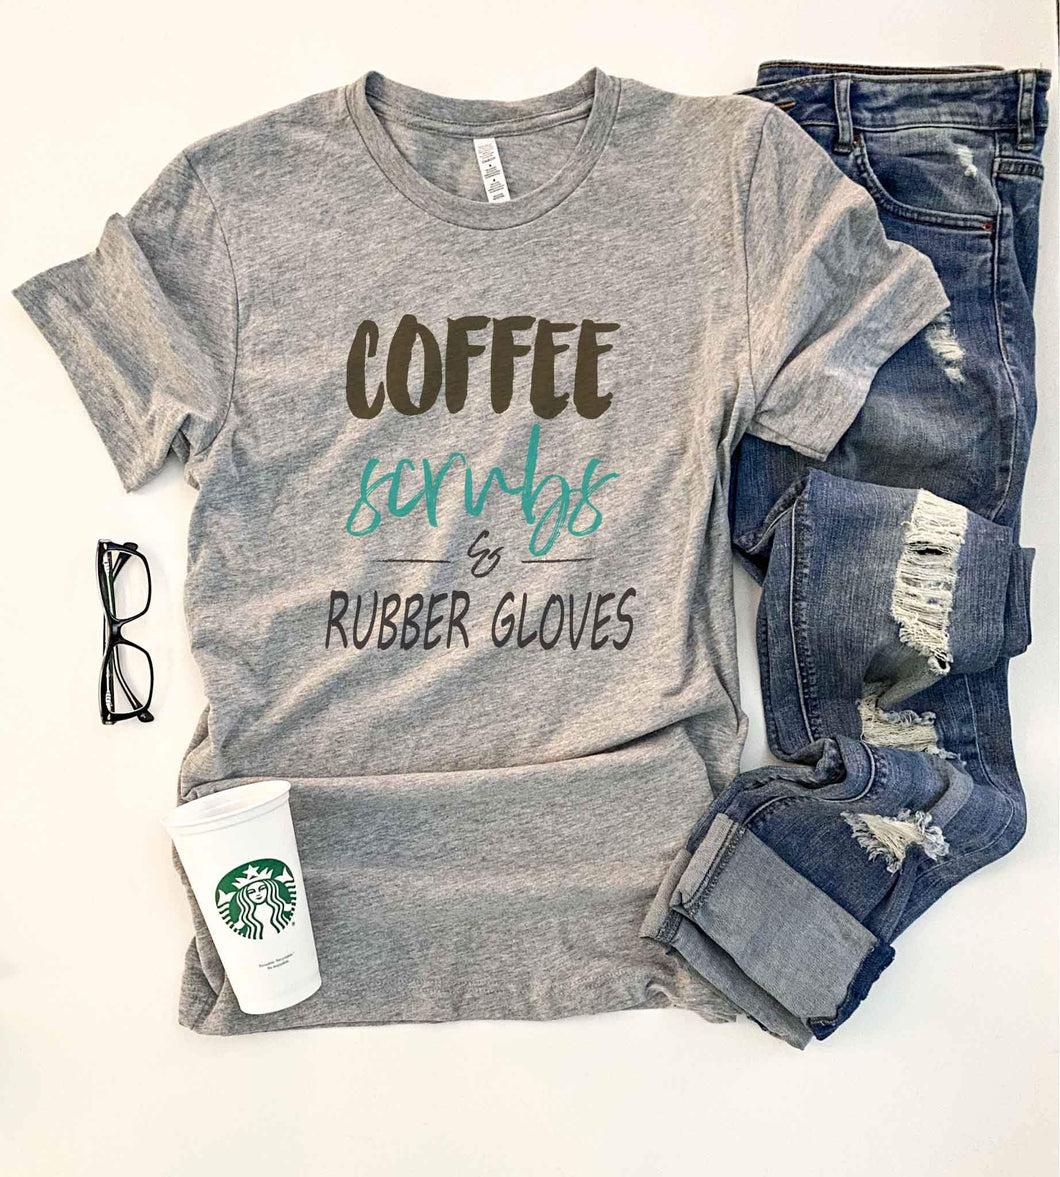 Coffee scrubs and rubber gloves tee Short sleeve healthcare tee Bella Canvas 3001